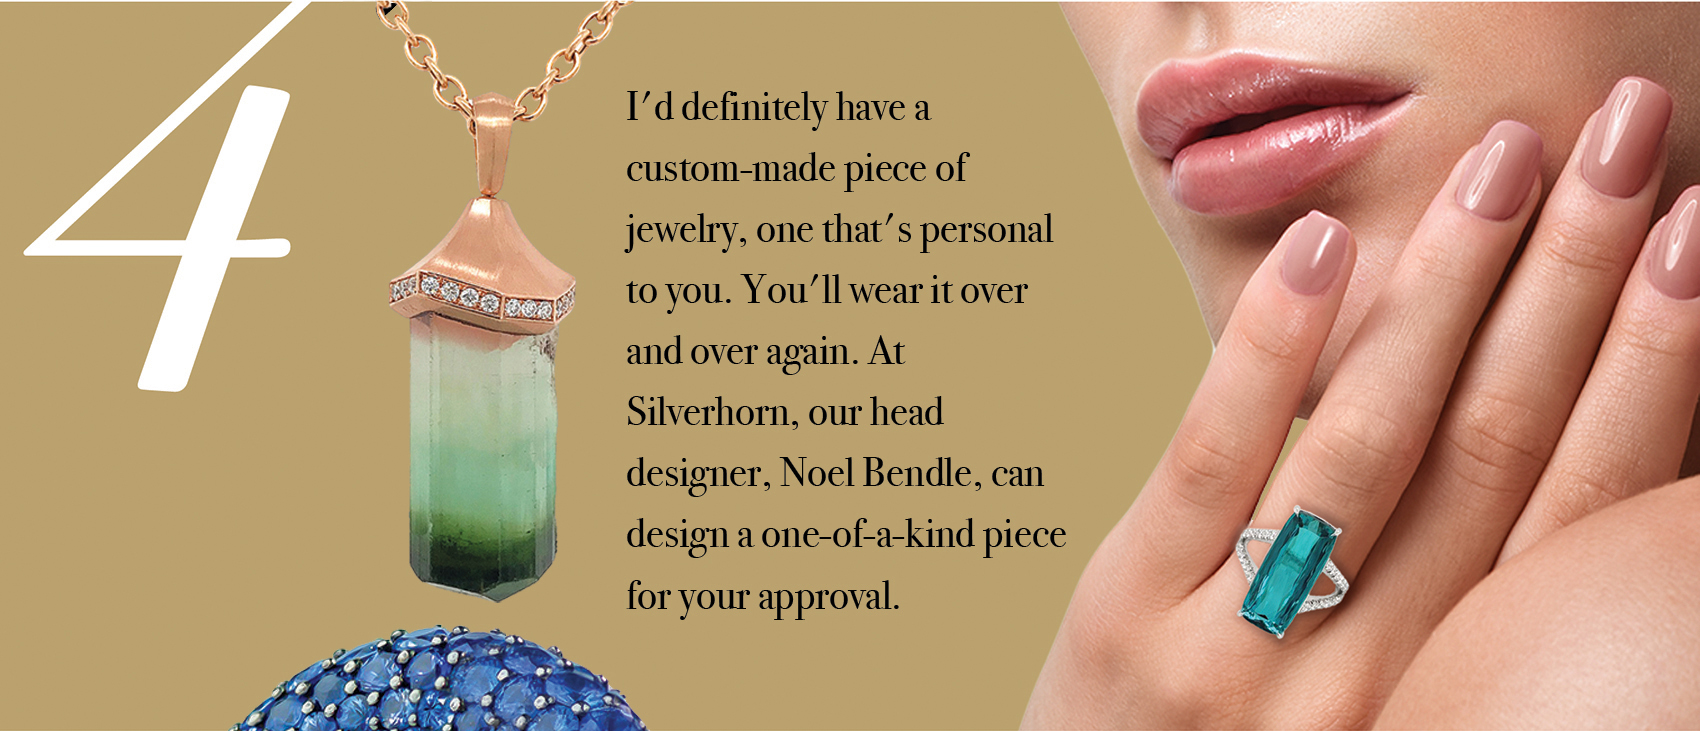 Your Jewelry Wardrobe Tip #4: I'd definitely have a custom-made piece of jewelry, one that's personal to you.